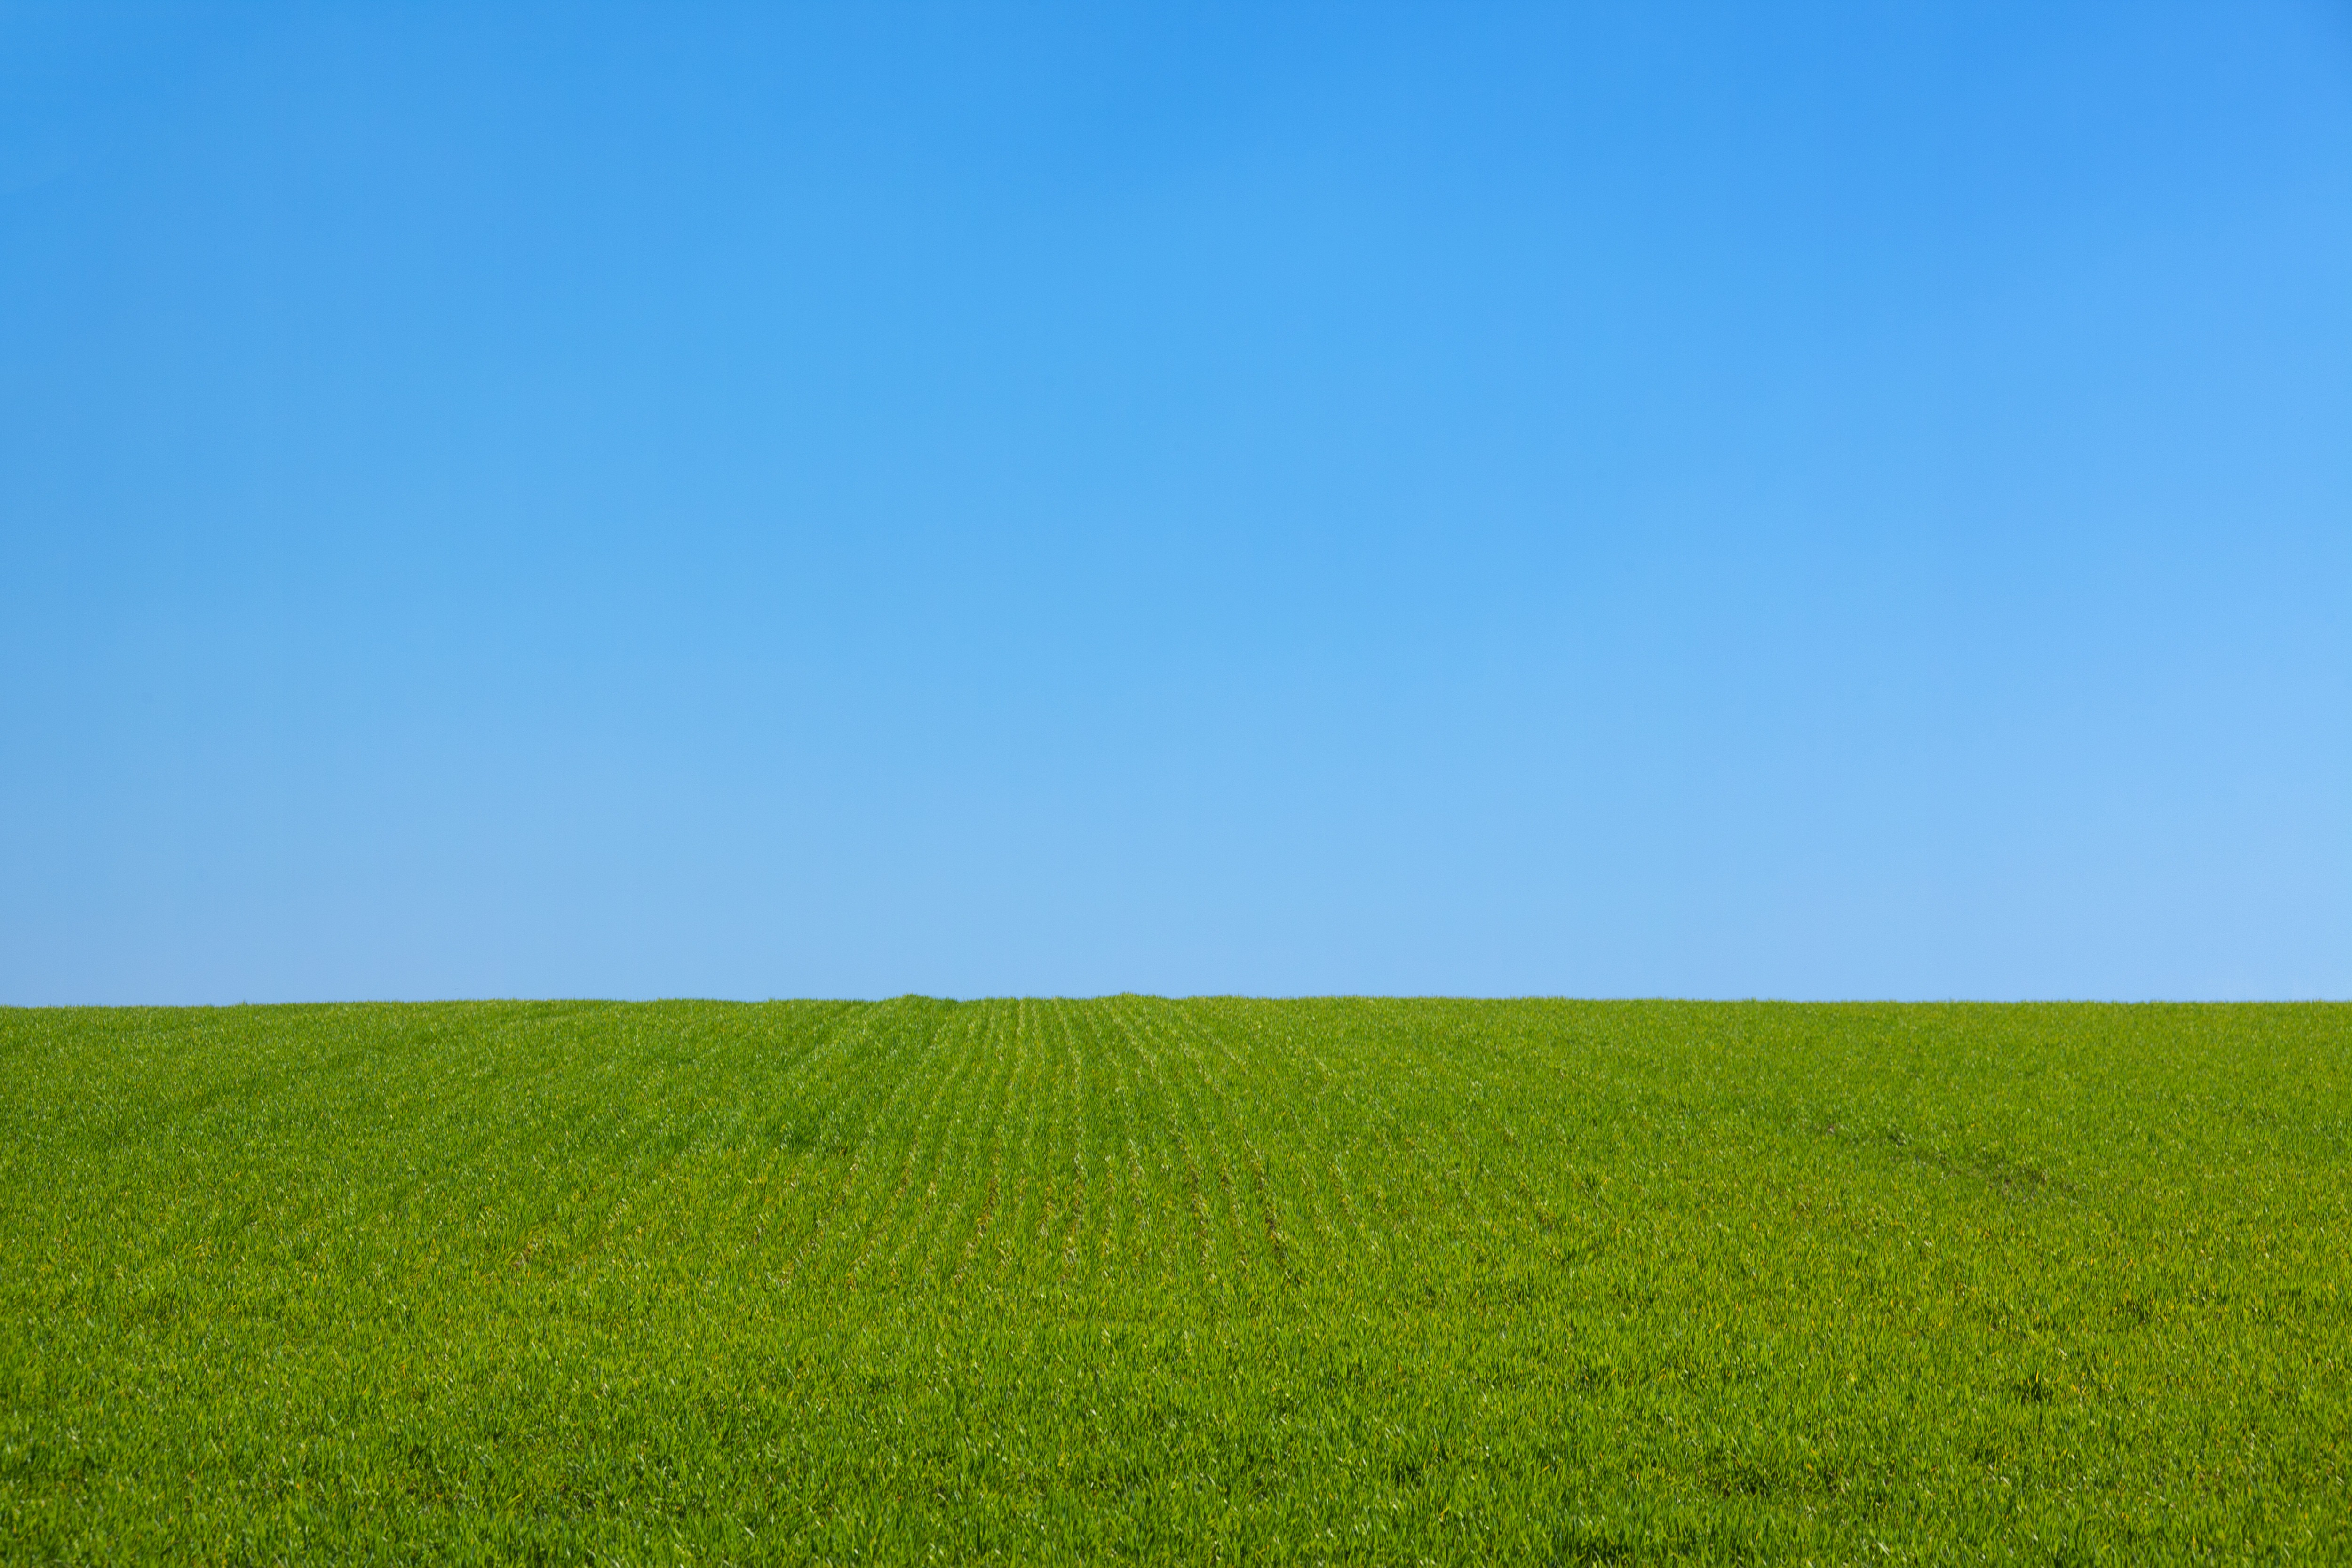 fields and grass - photo #5